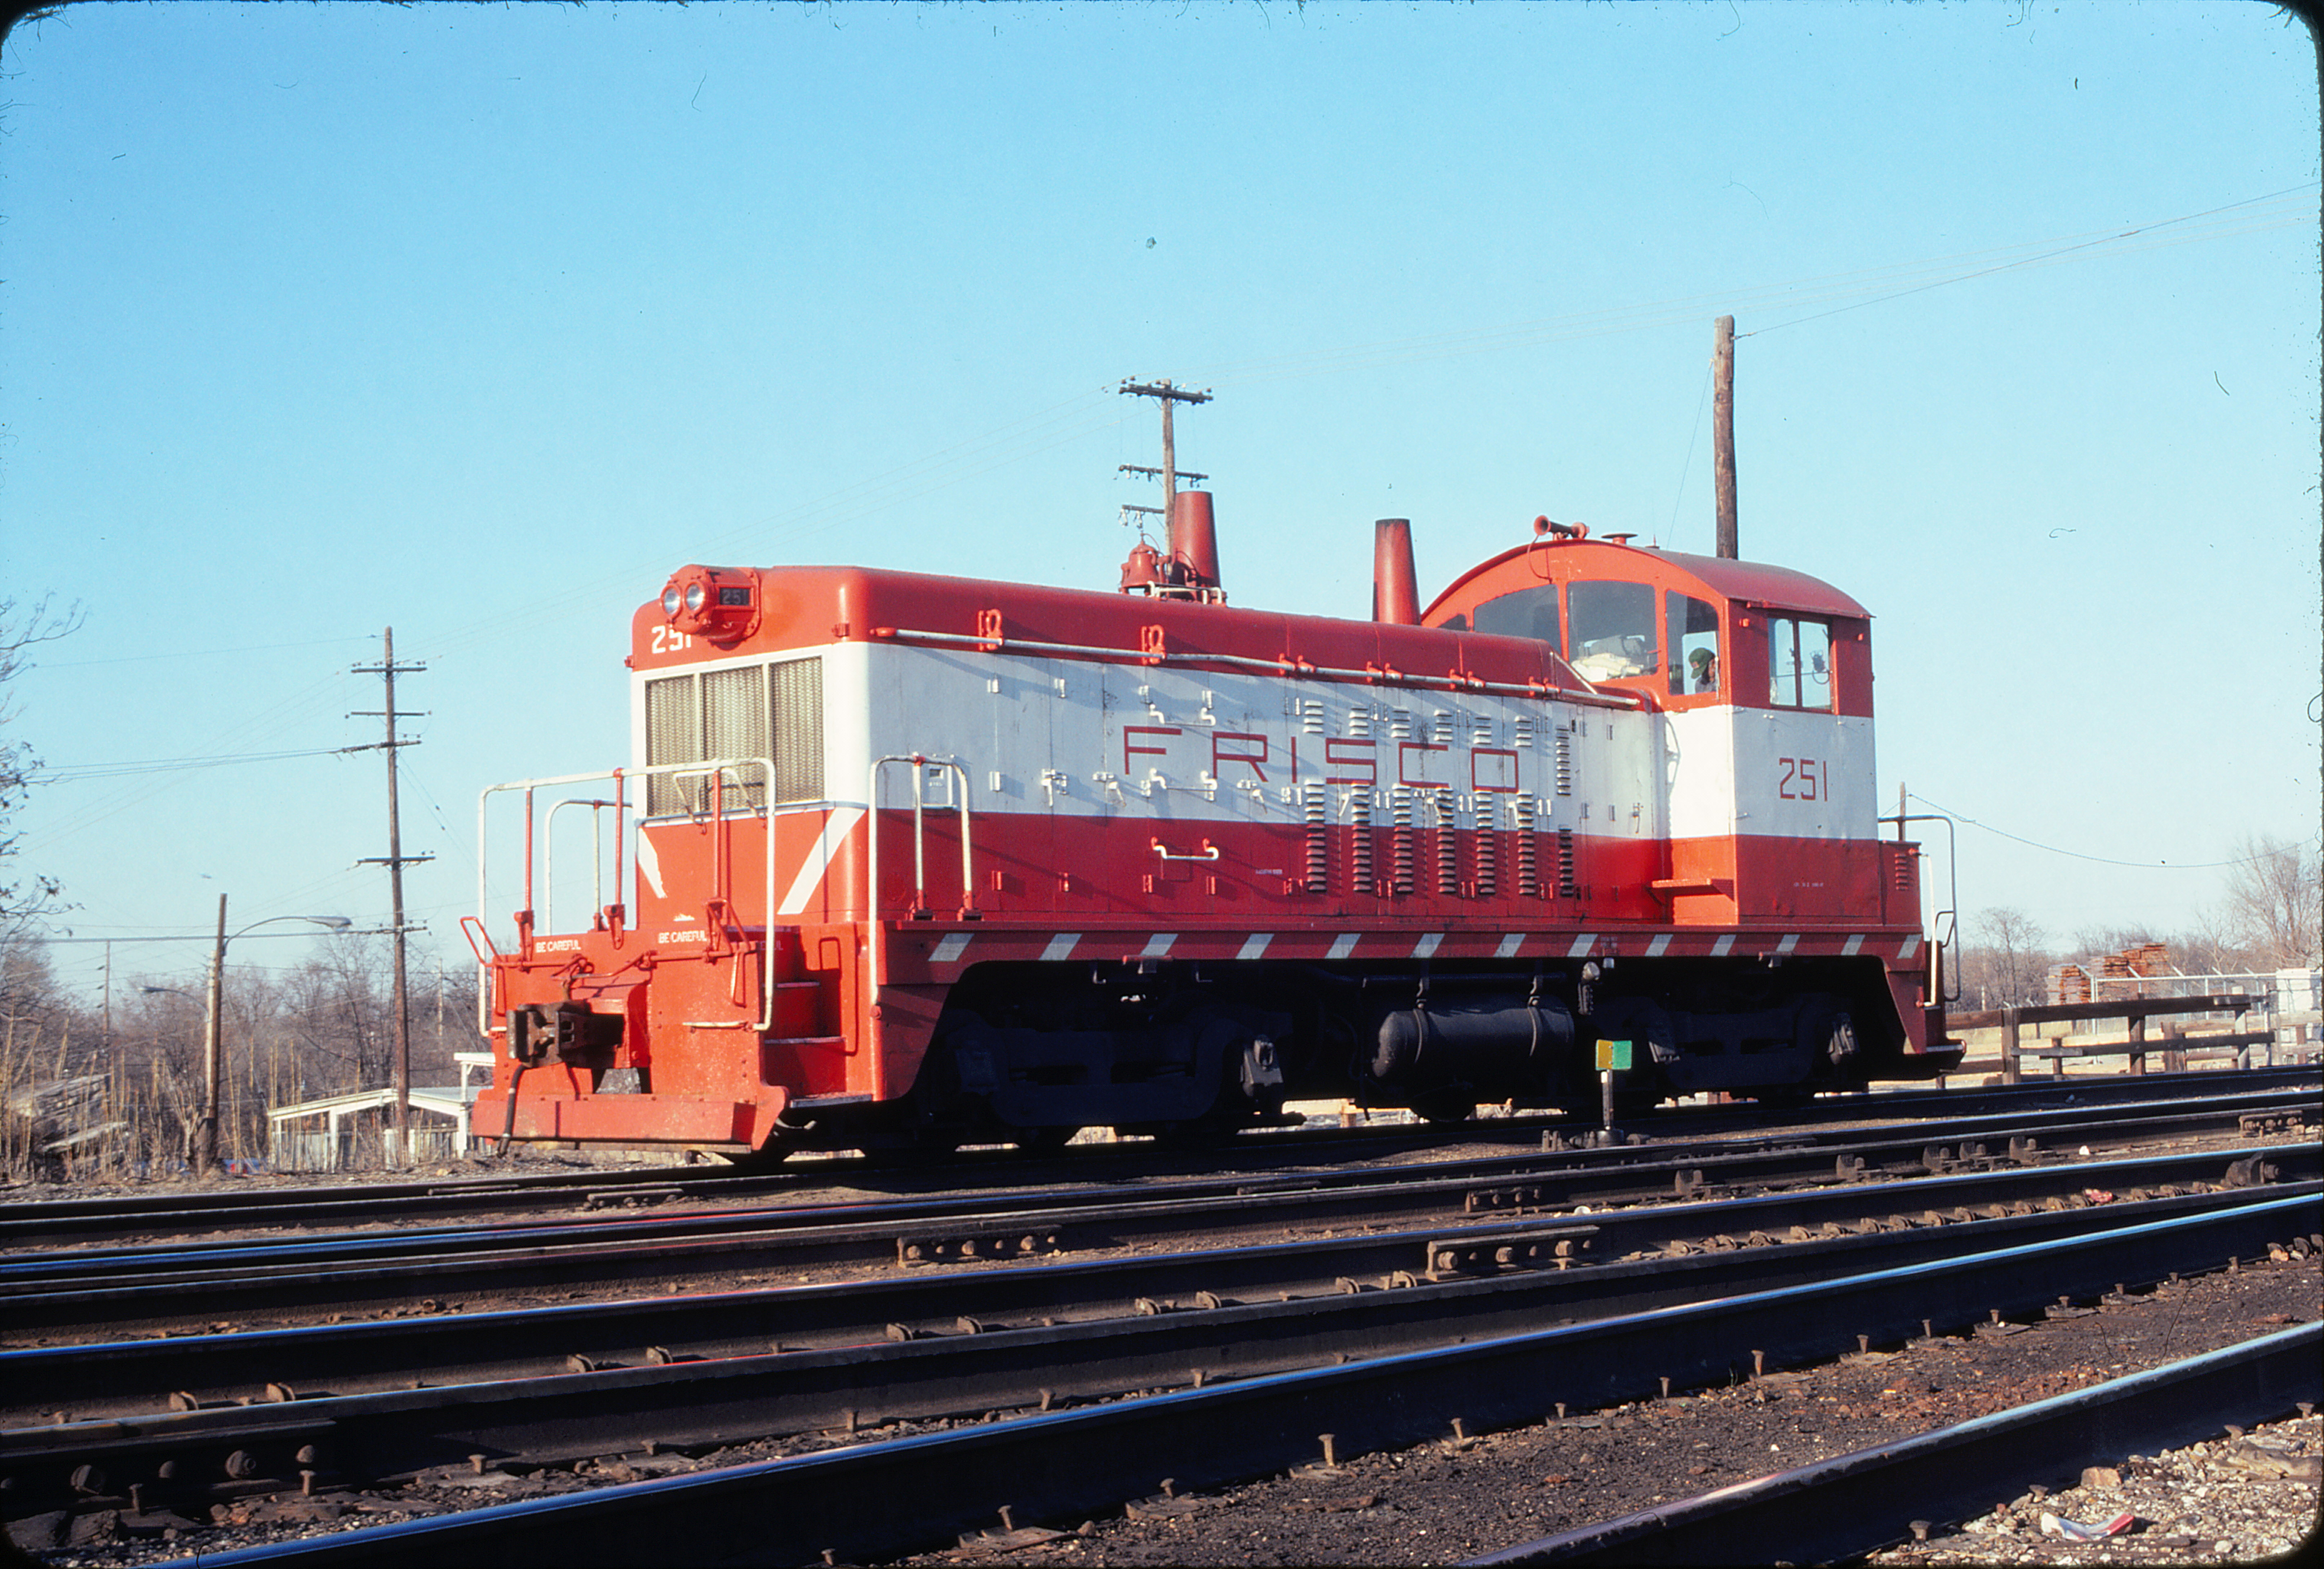 NW2 251 at Springfield, Missouri in March 1980 (Ken McElreath)